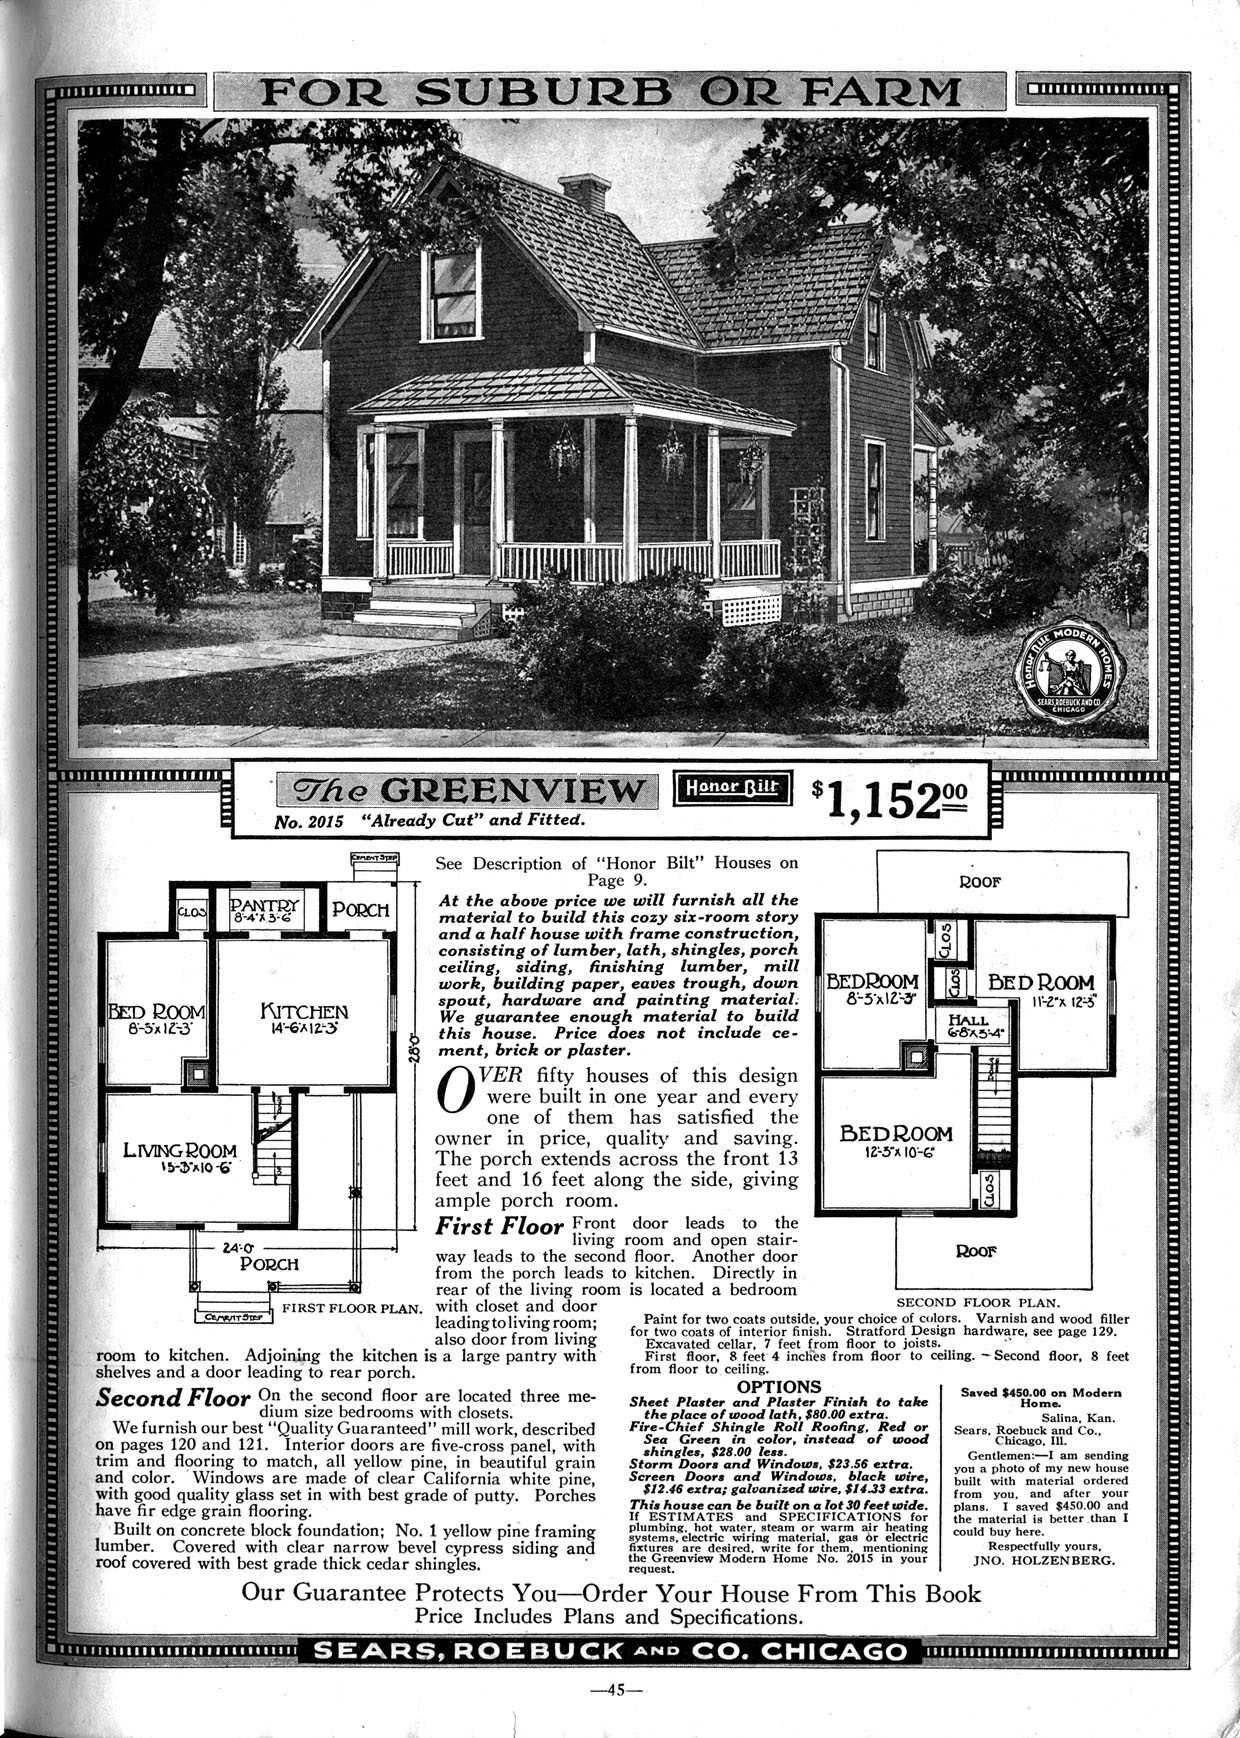 1900 sears house plans searsarchivescom Sears Homes 1915 1920